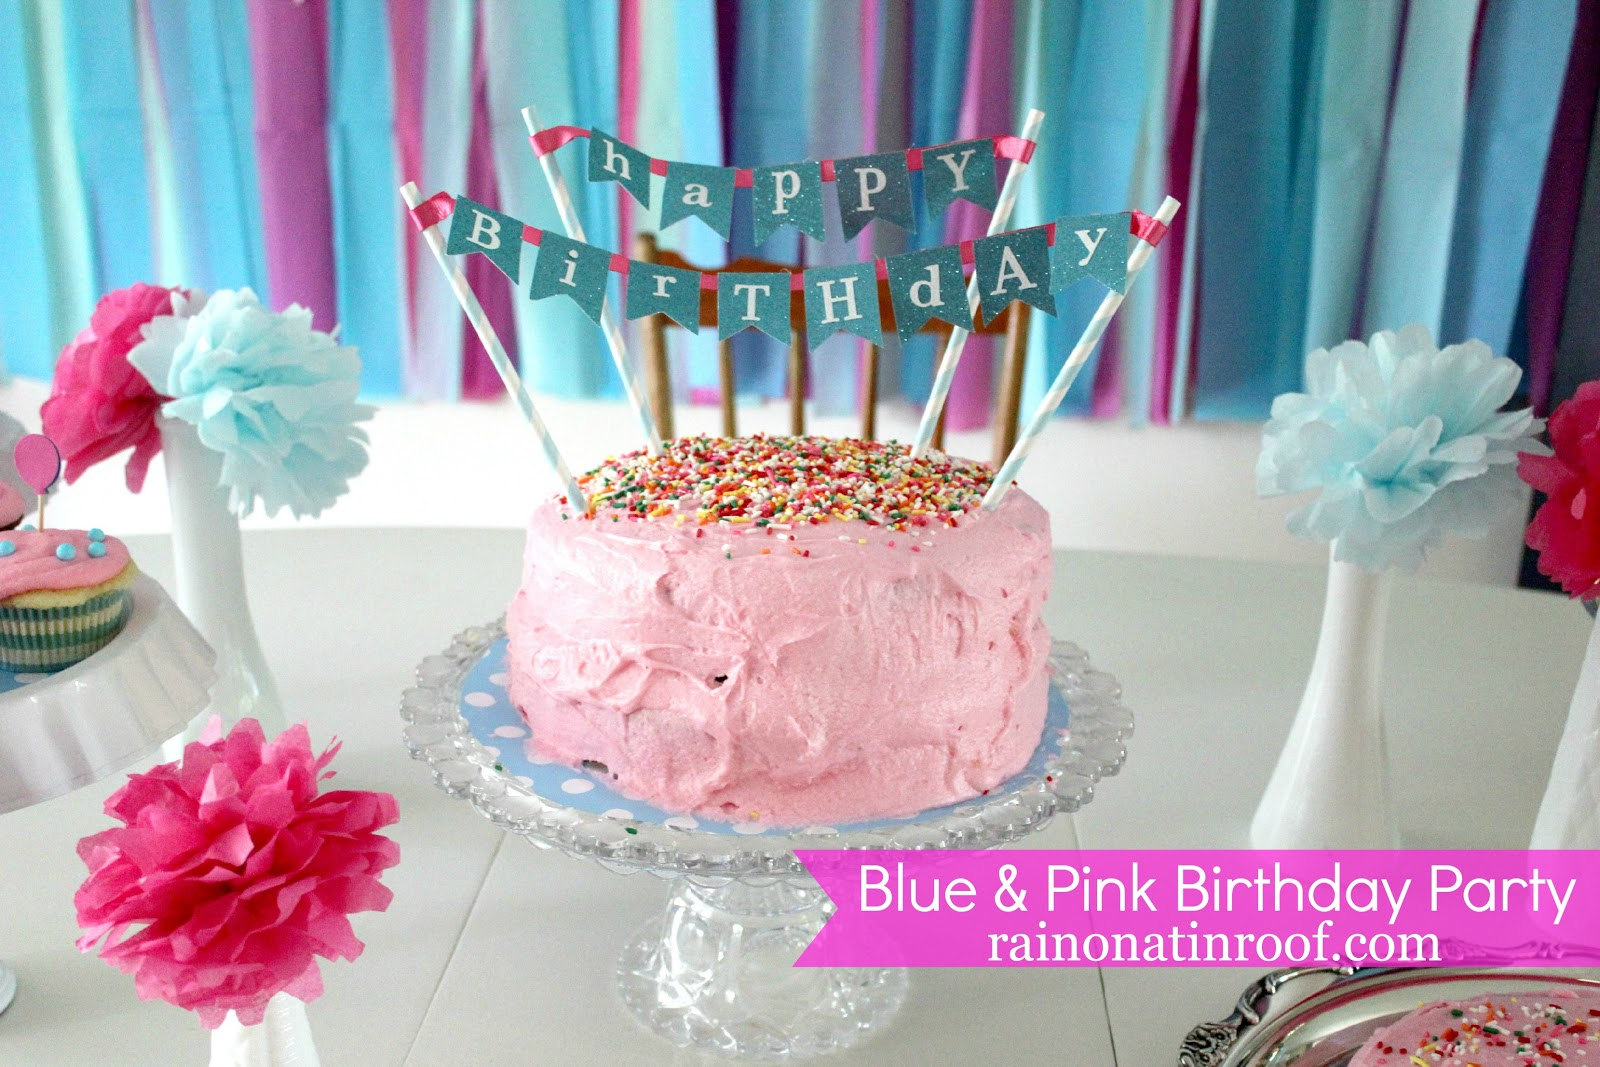 Pink Birthday Cake Decoration Ideas : A Stylish Blue and Pink Birthday Party